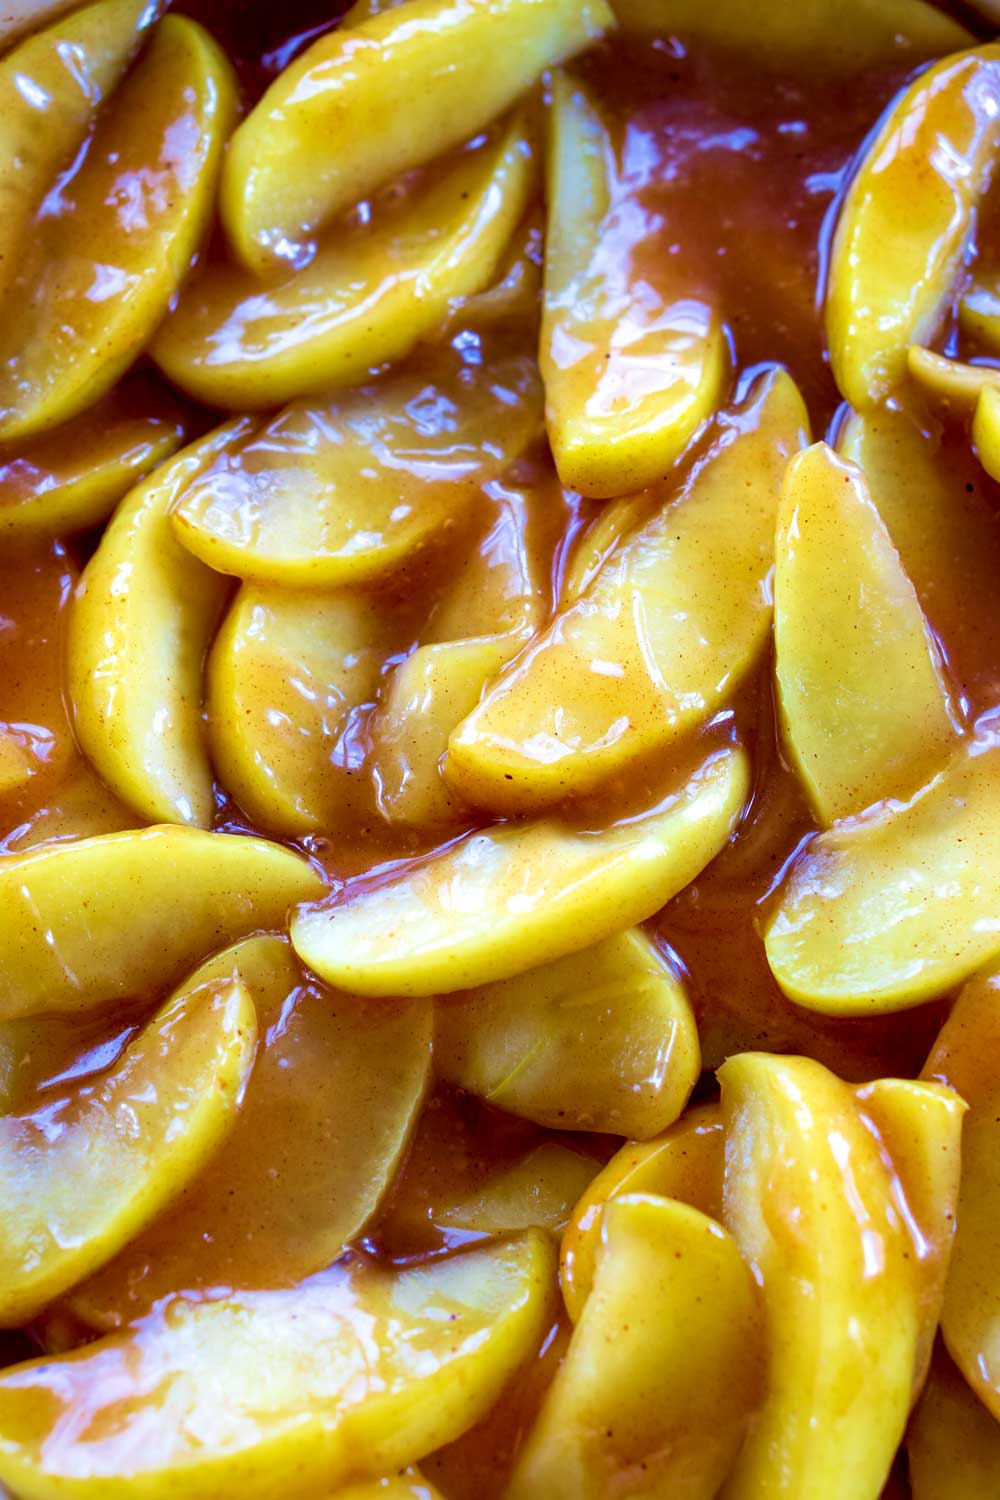 How do you make fried apples? First, you cut the apples and simmer them in a butter, apple juice, and spice mixture until they're for-tender. Then, move the apples to a serving dish using a slotted spoon. Then, thicken the warm apple juice left in the bowl with corn starch. Next, whisk constantly until the mixture thickens. Finally, pour the sauce over the fork-tender apples and toss until the apples are coated.